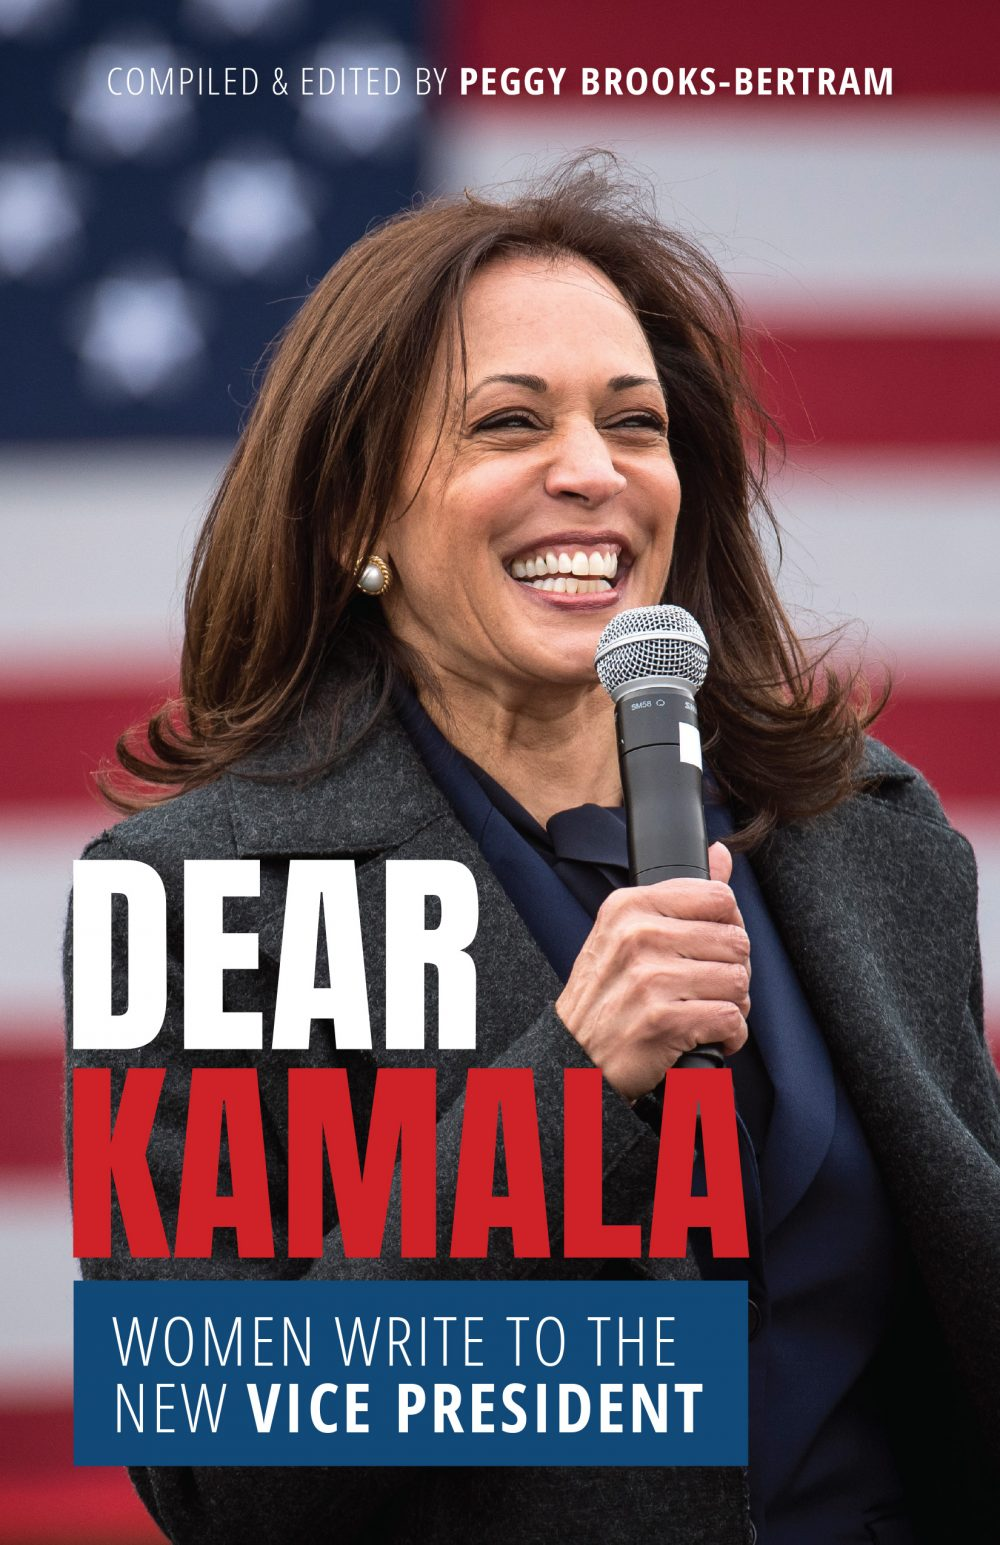 A New Book Collects Letters from Women Inspired by Kamala Harris